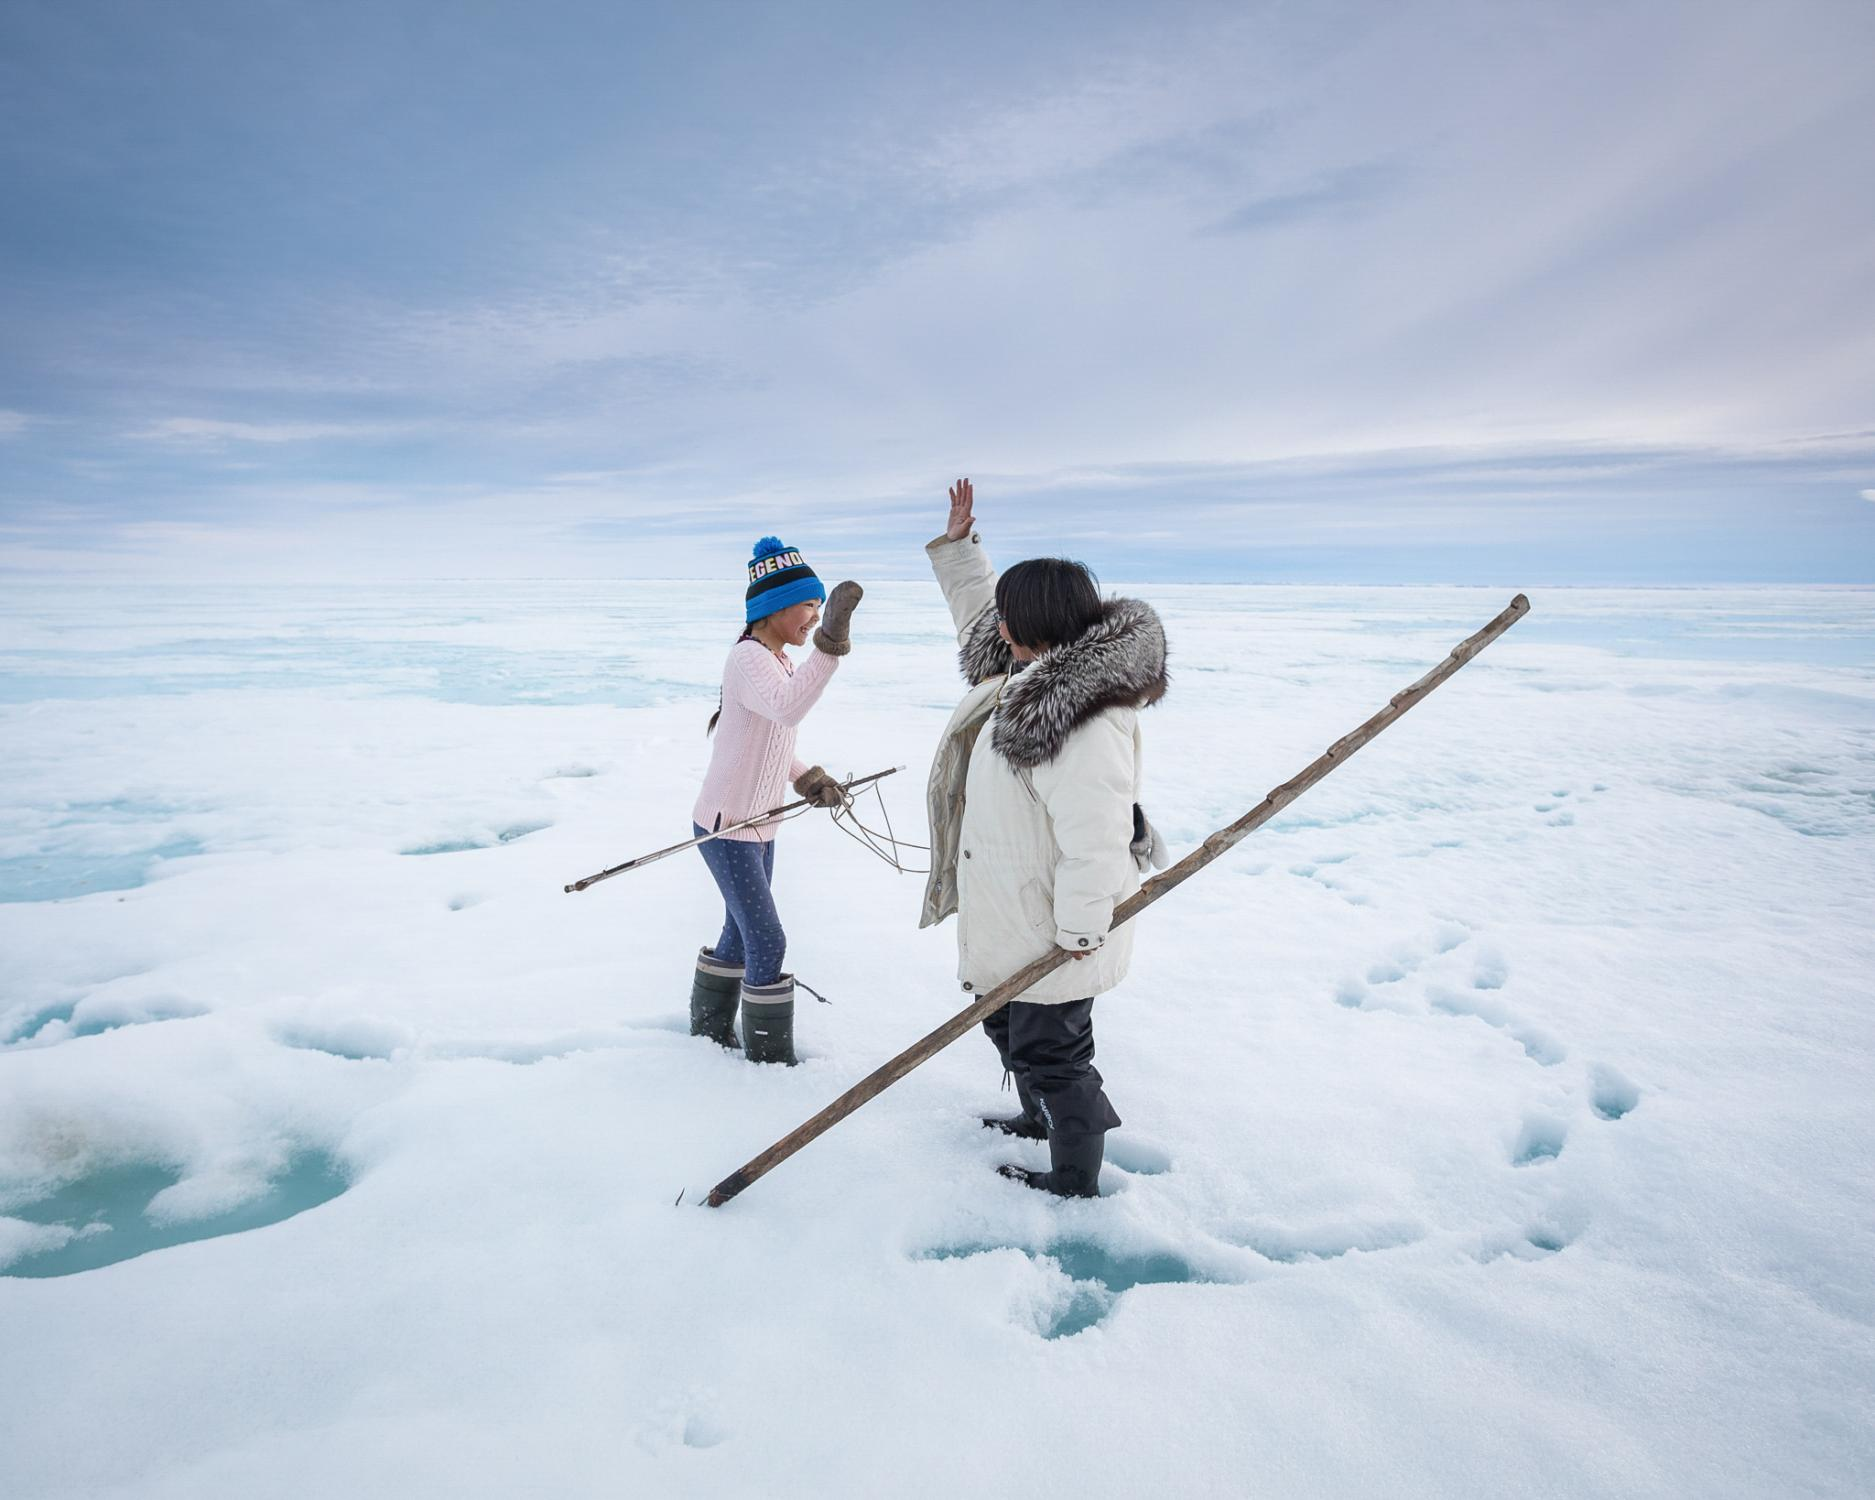 Celebrating the catch of her first seal, Horizon Willie, 10, gets a high-five from her aunt Leesie Naqitarvik, on the sea ice near their camp at Nuvukutaak. Leesie had traveled from her home in Ottawa to join her extended family for a camping trip to ancestral hunting grounds, where her parents shared their deep knowledge of the land.